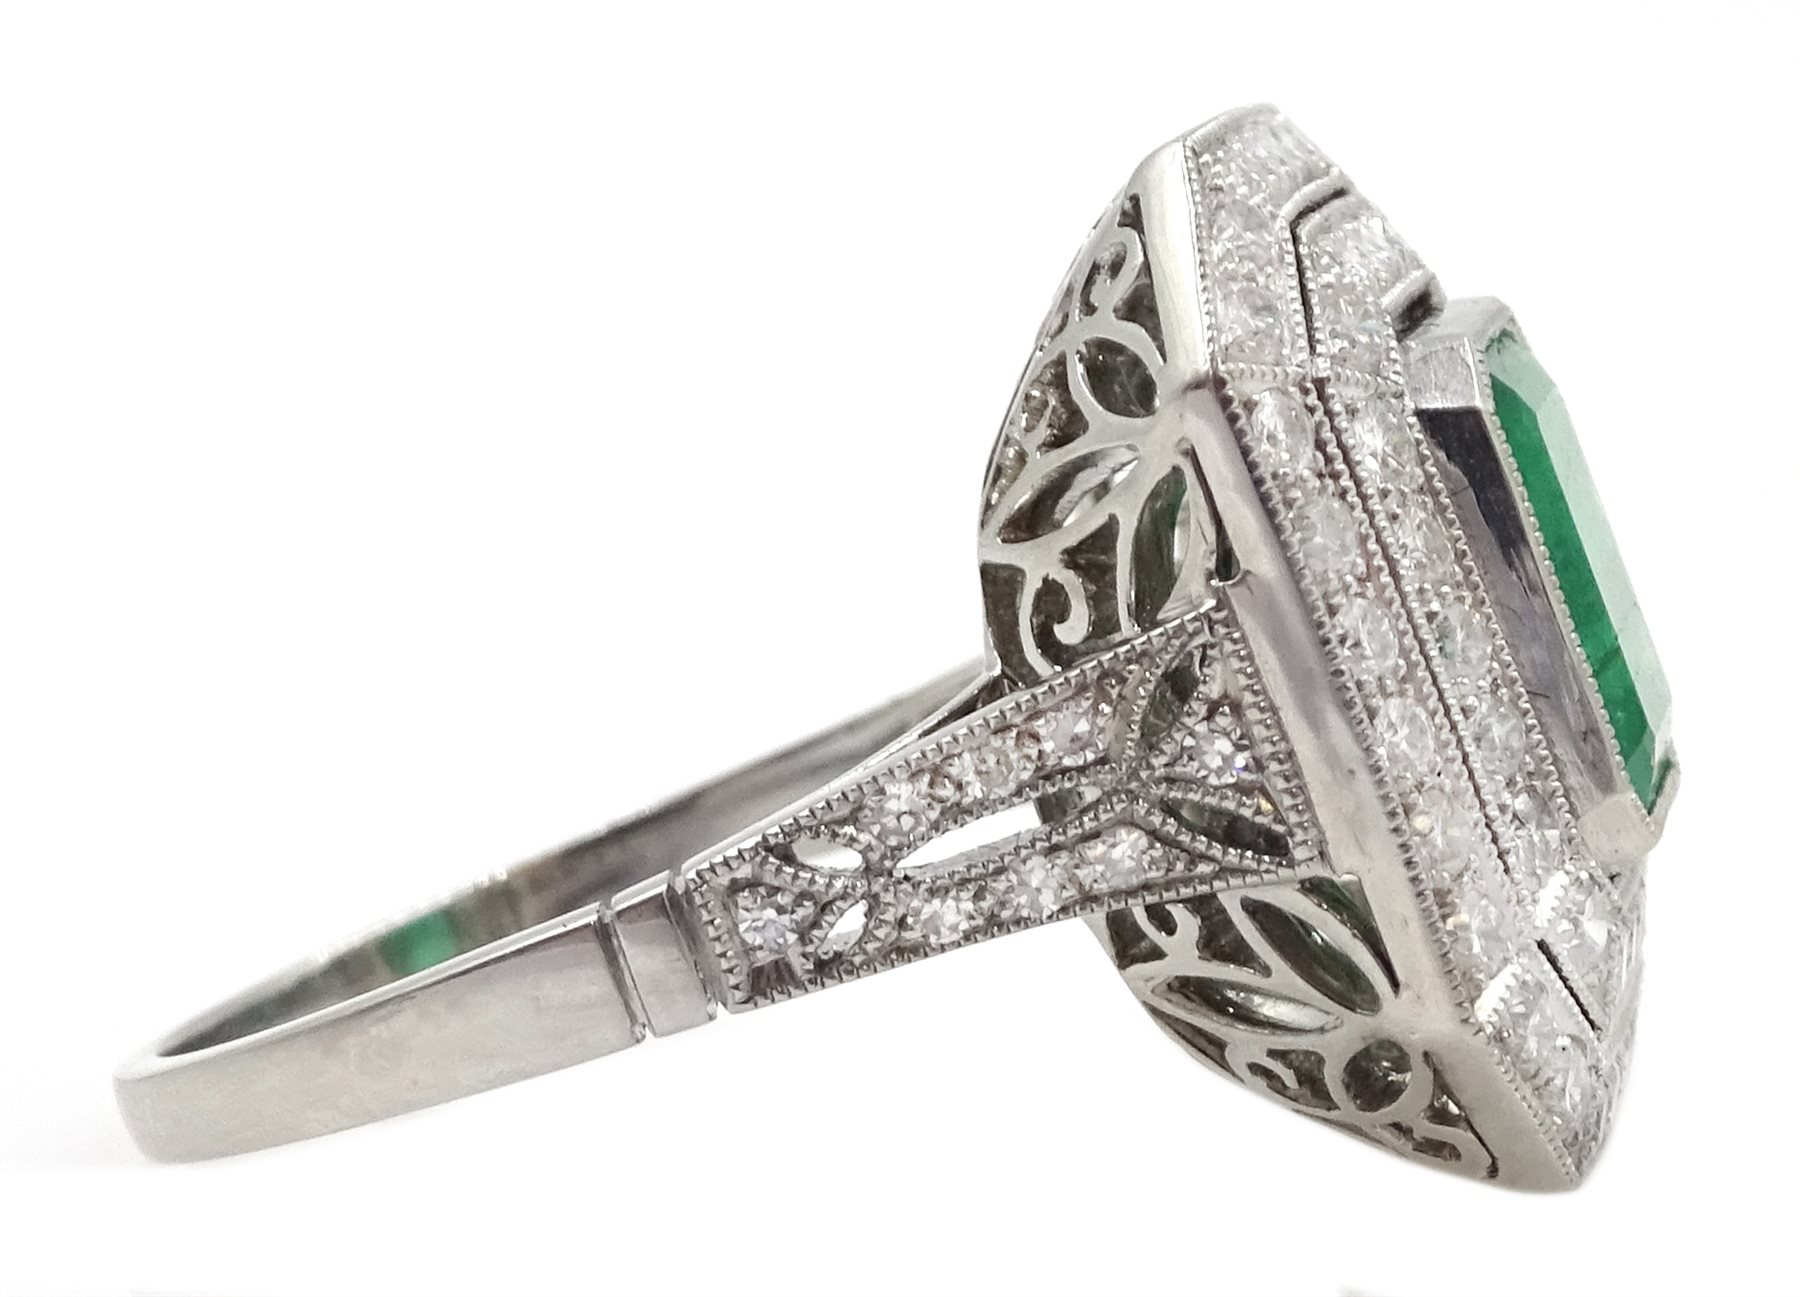 Platinum emerald and double row diamond ring, with diamond set shoulders, emerald approx 1.85 carat, - Image 4 of 5